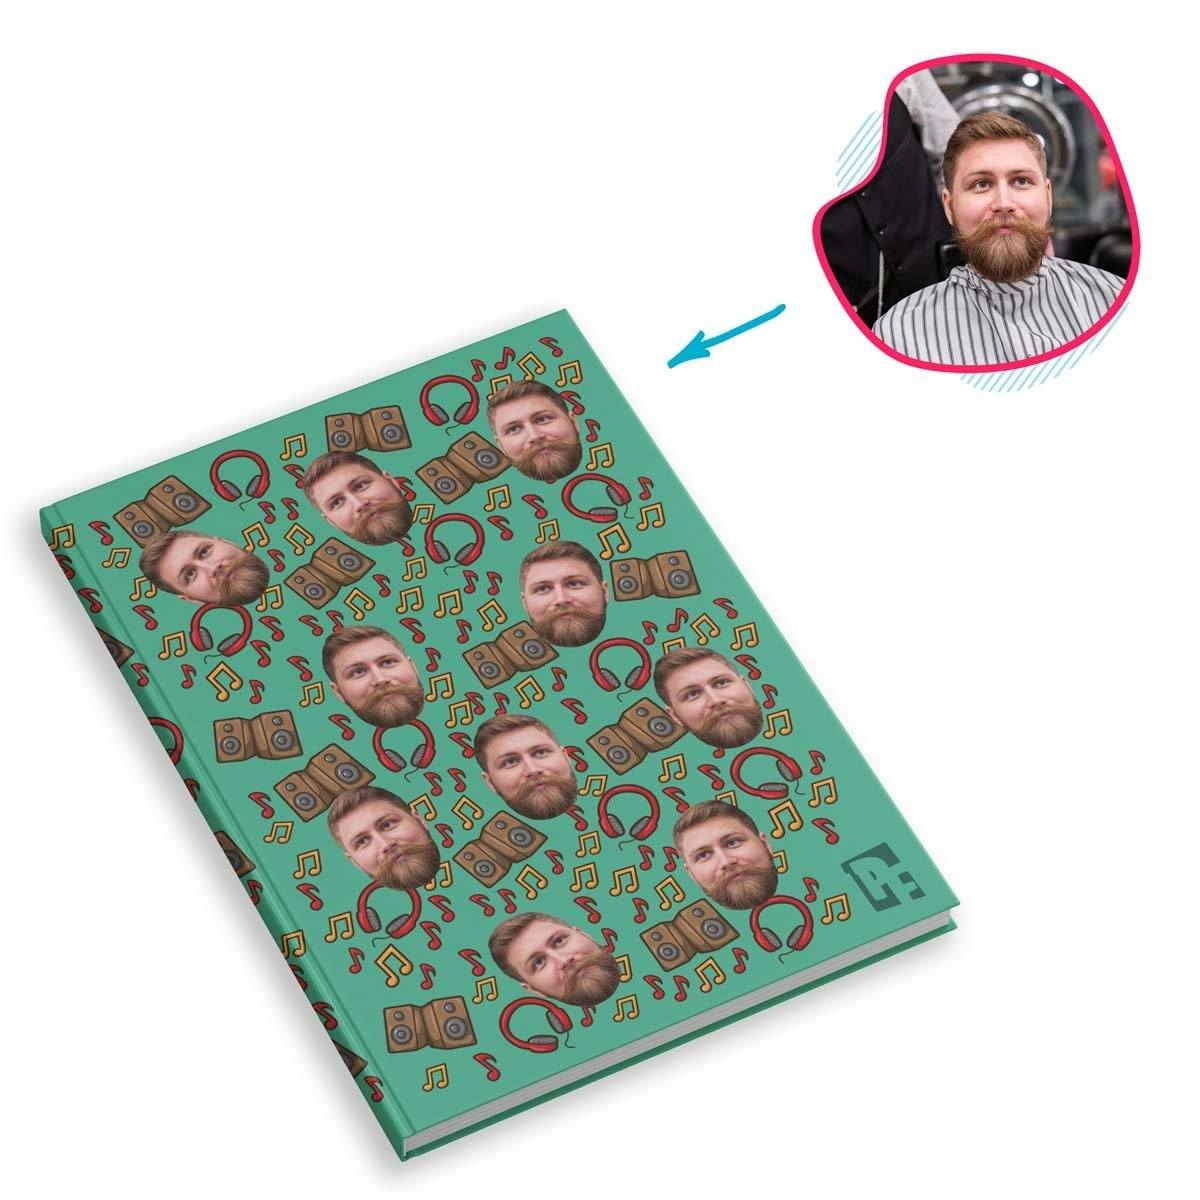 mint Music Notebook personalized with photo of face printed on them